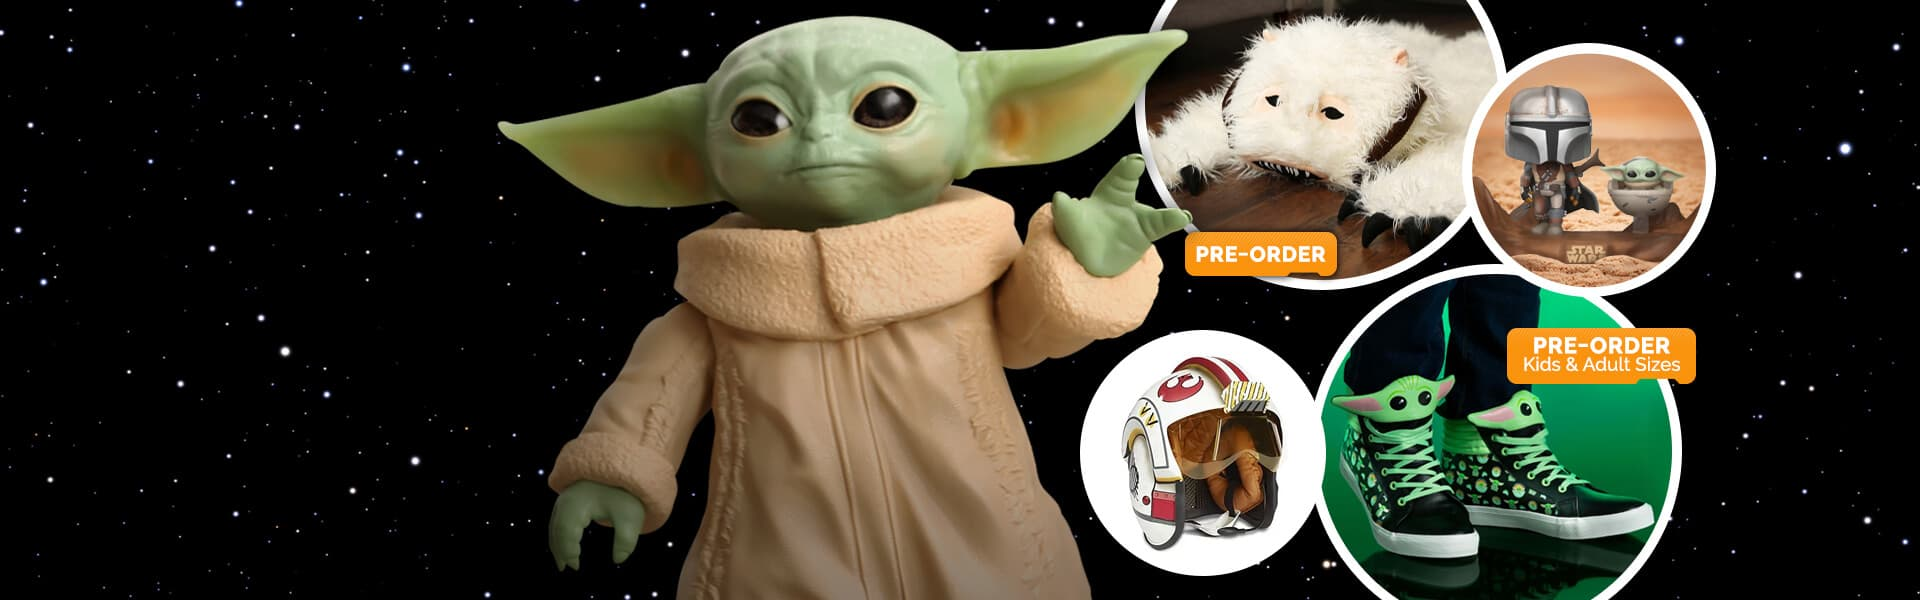 Star Wars Gifts for Adults and Kids